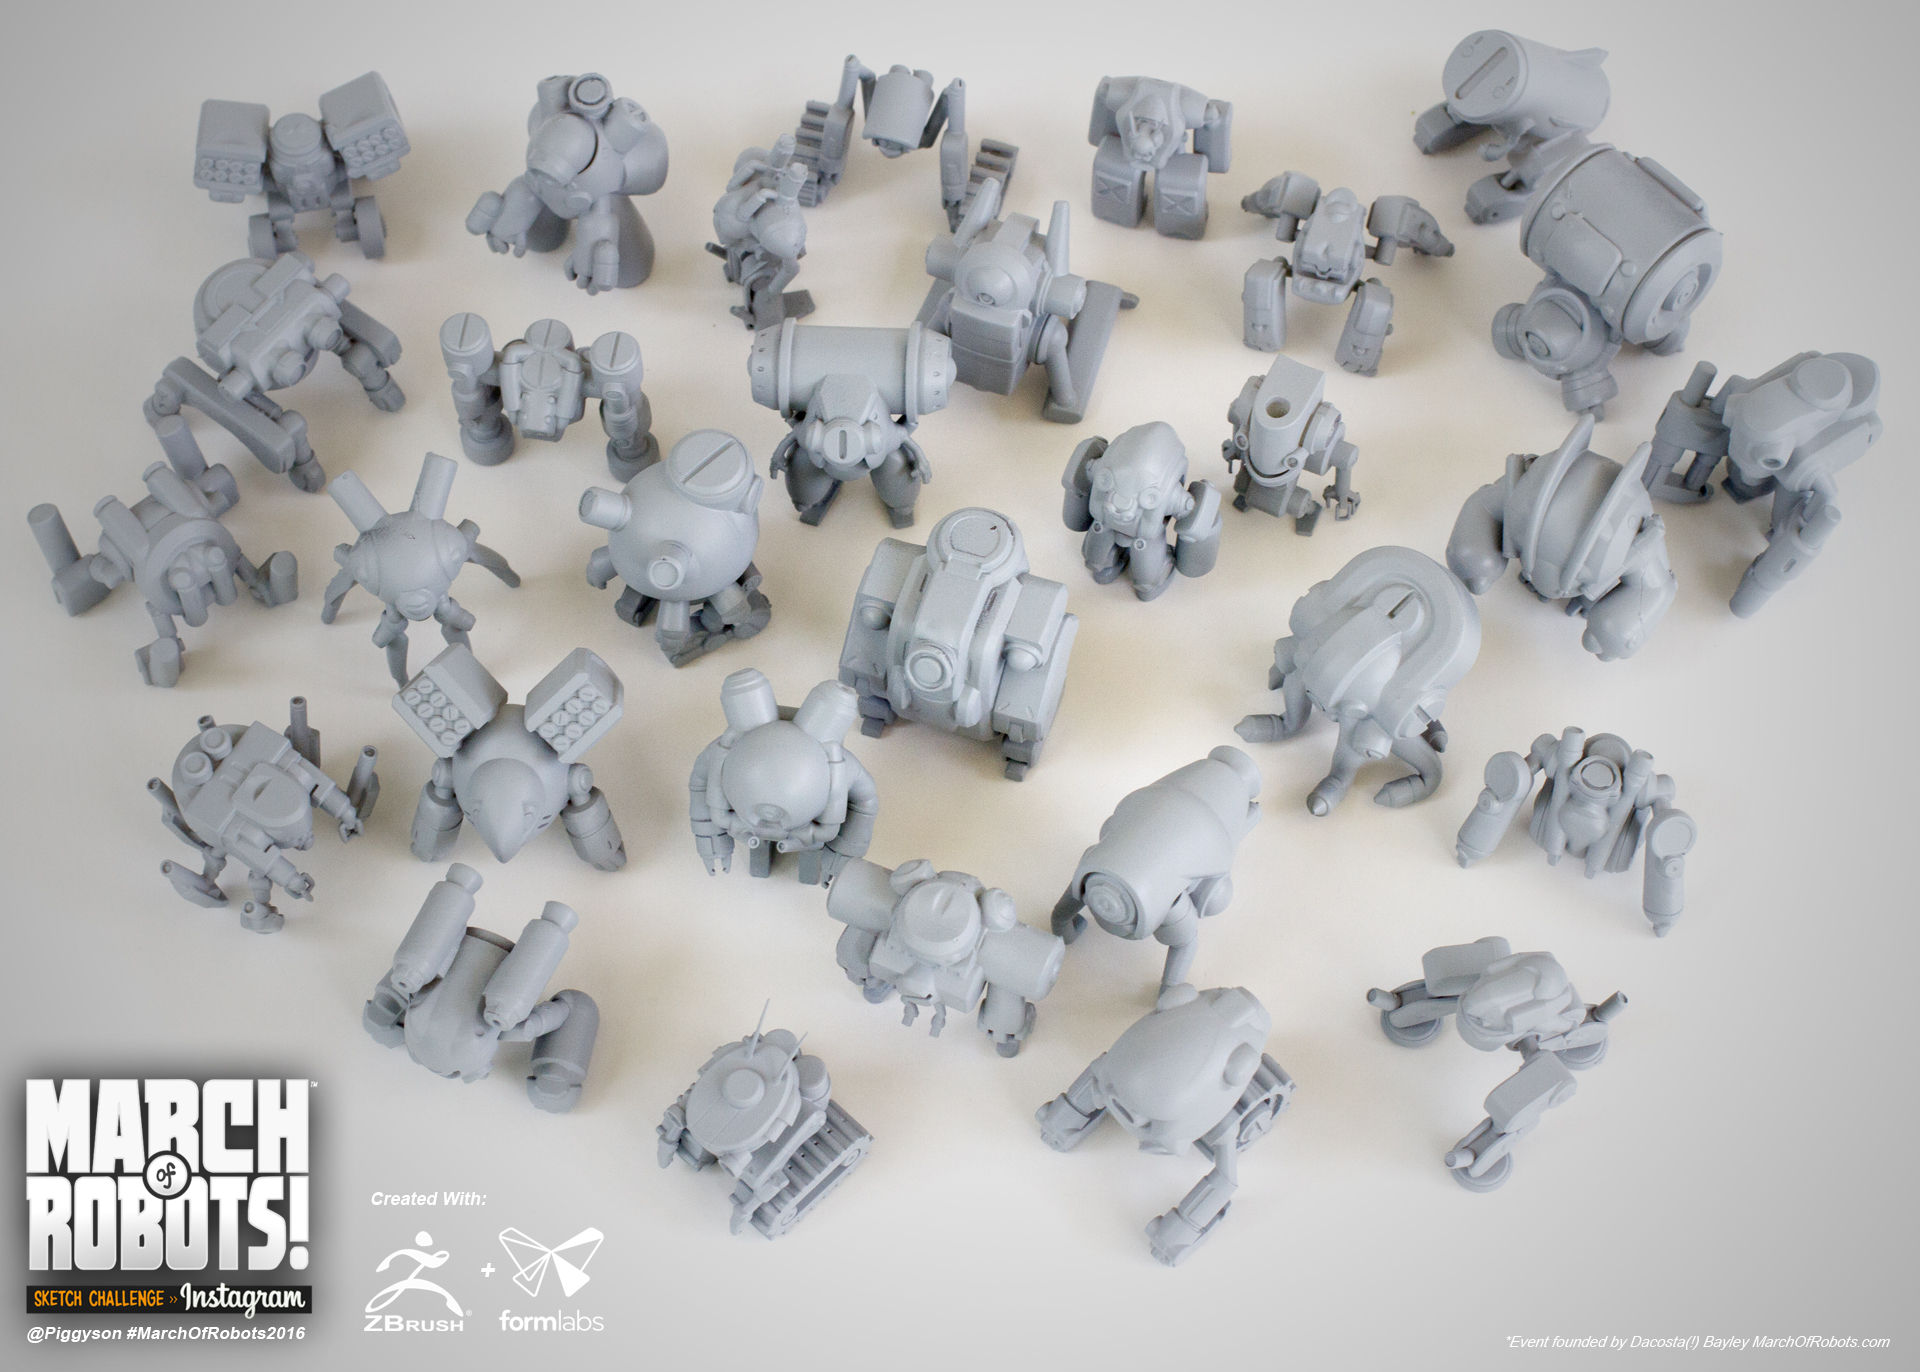 Group shot of all 31 printed robots.